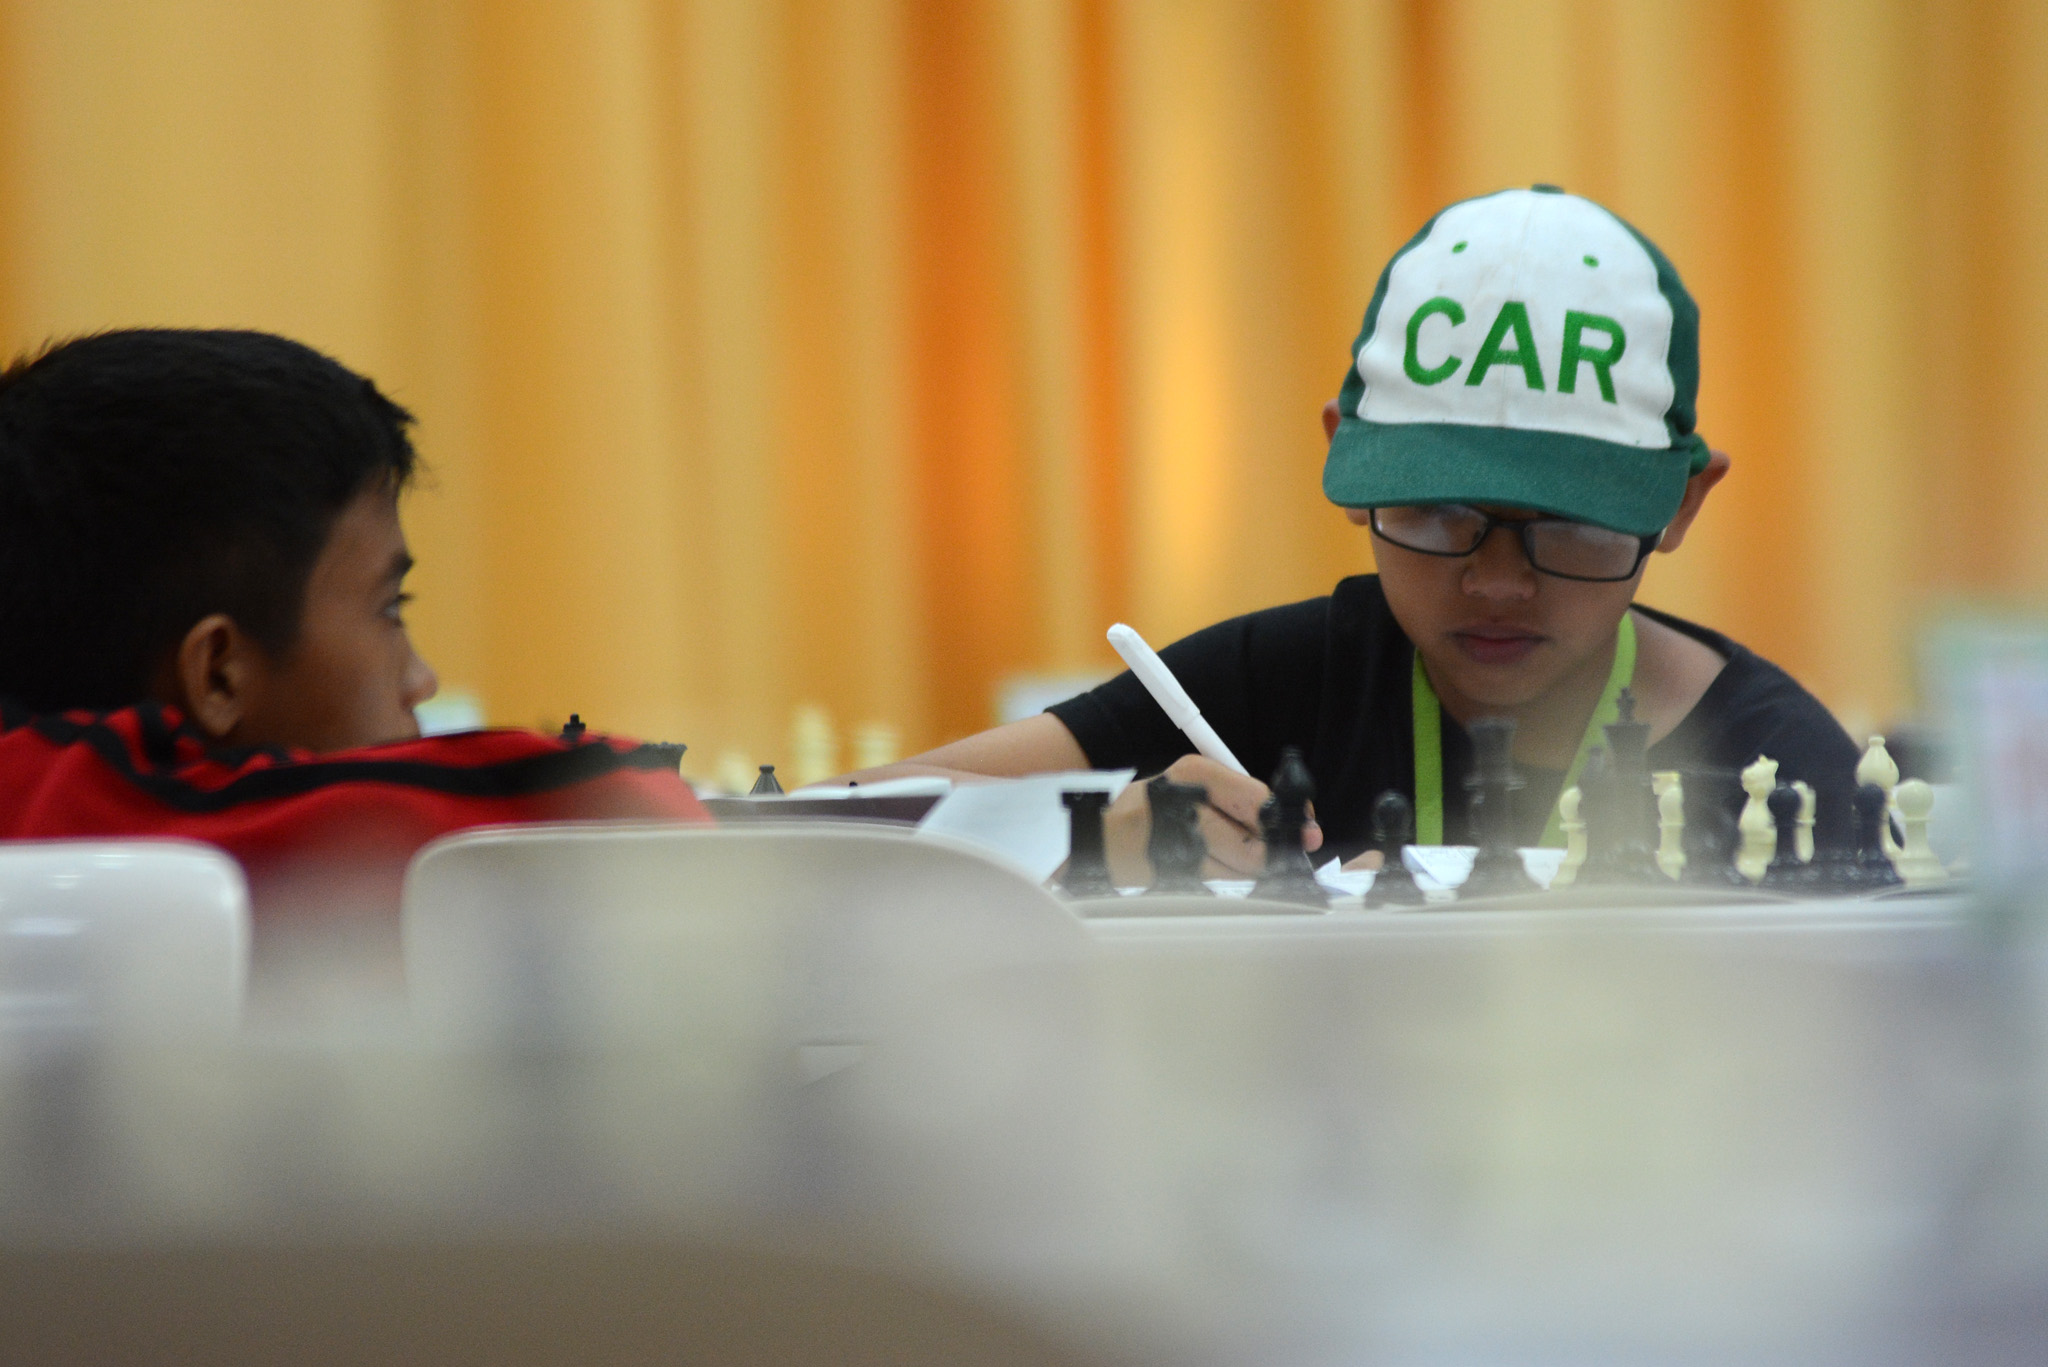 SERIOUS. A CAR athlete has his game face on during a chess match. Photo by Roy Secretario/Rappler